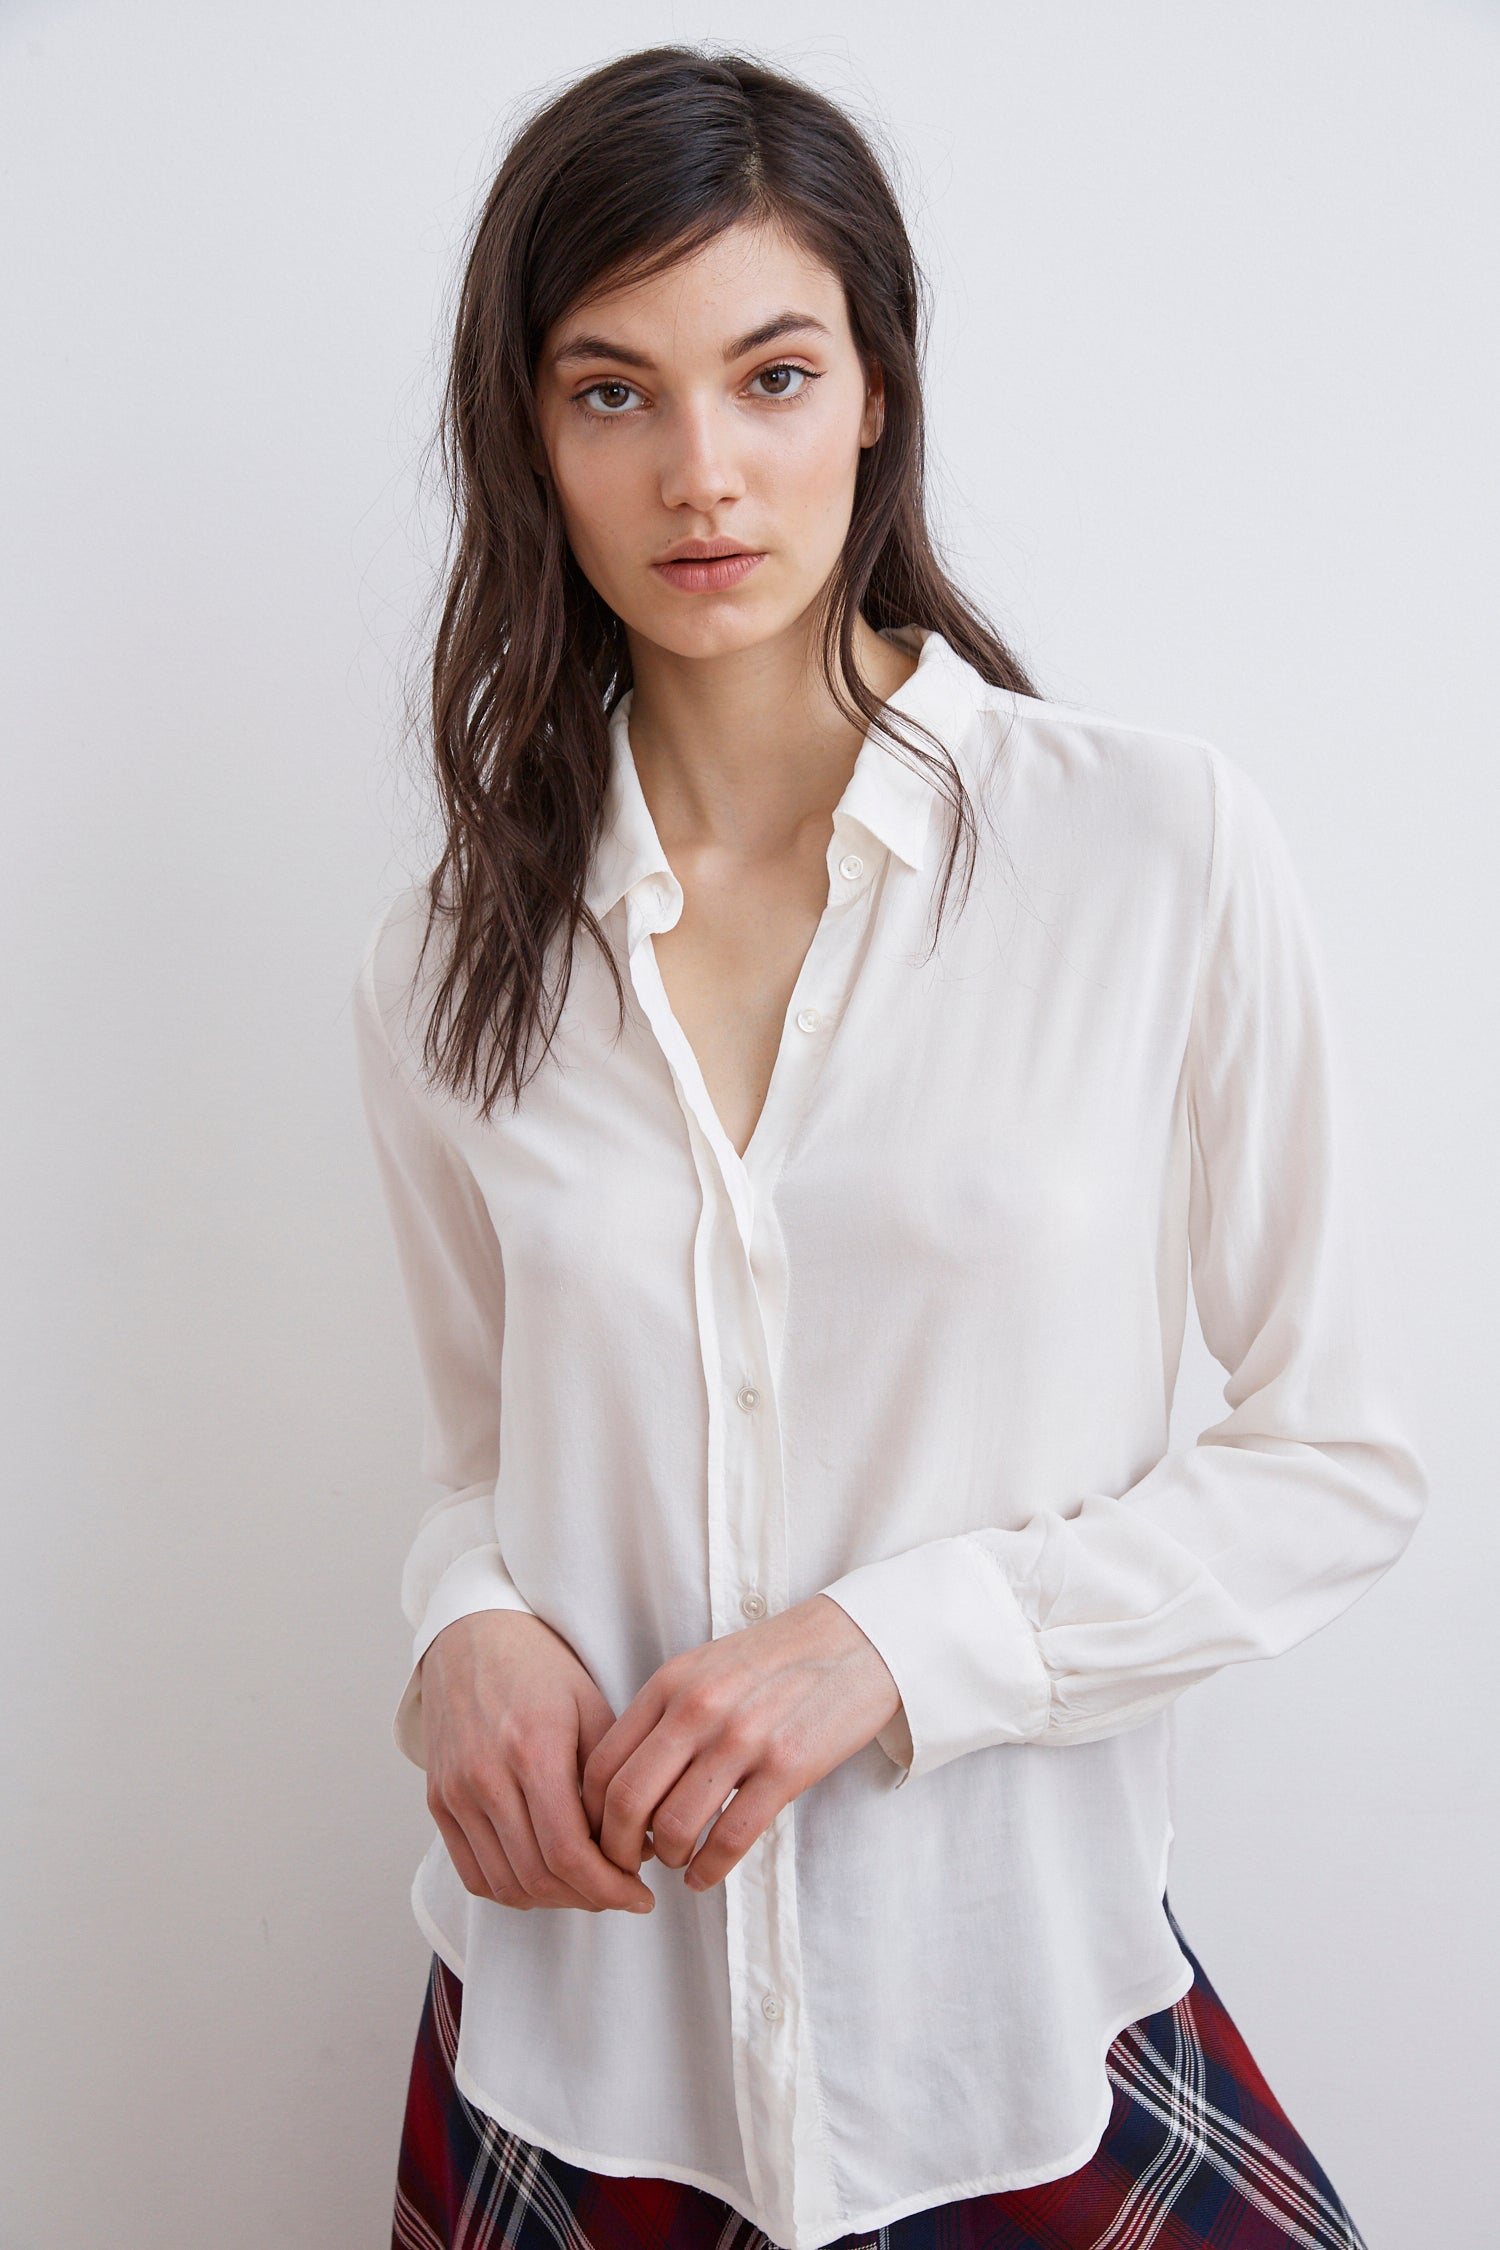 MELBA RAYON CHALLIS BUTTON UP SHIRT IN WINTER